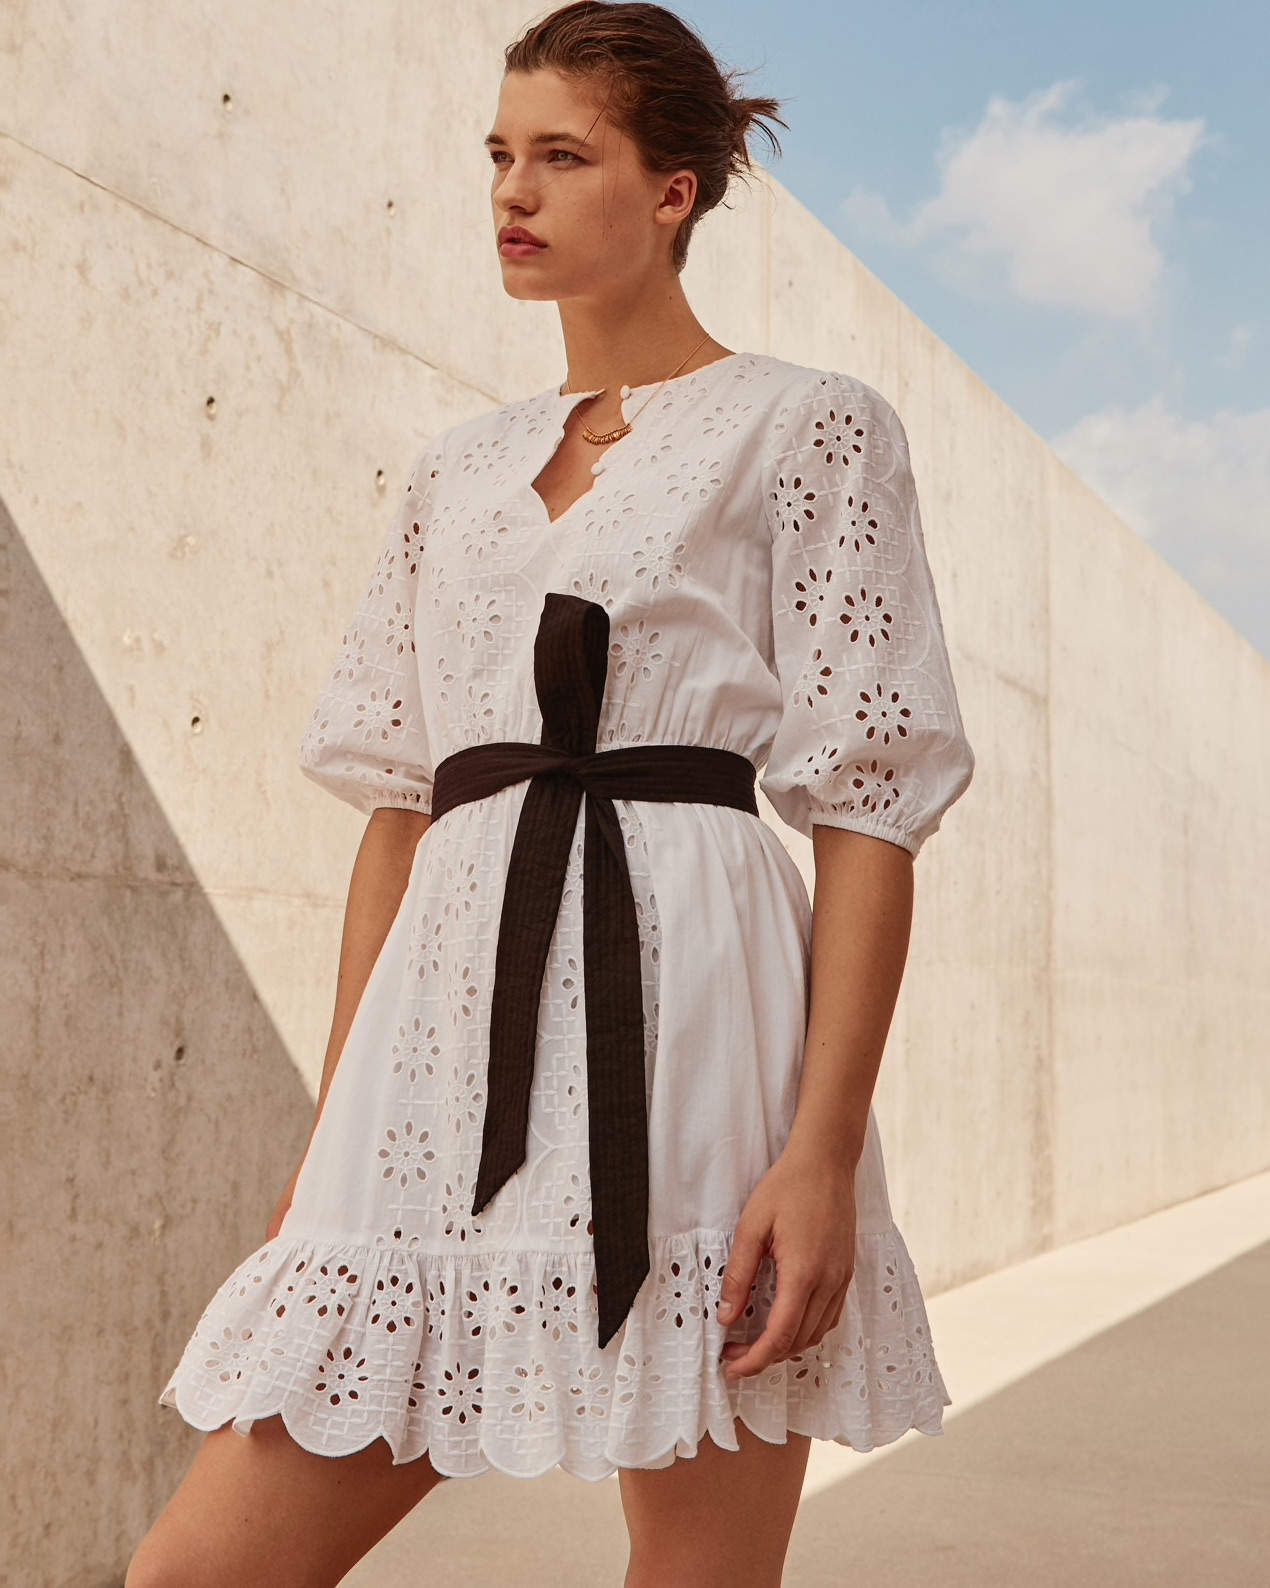 White Eyelet Dress From JCrew